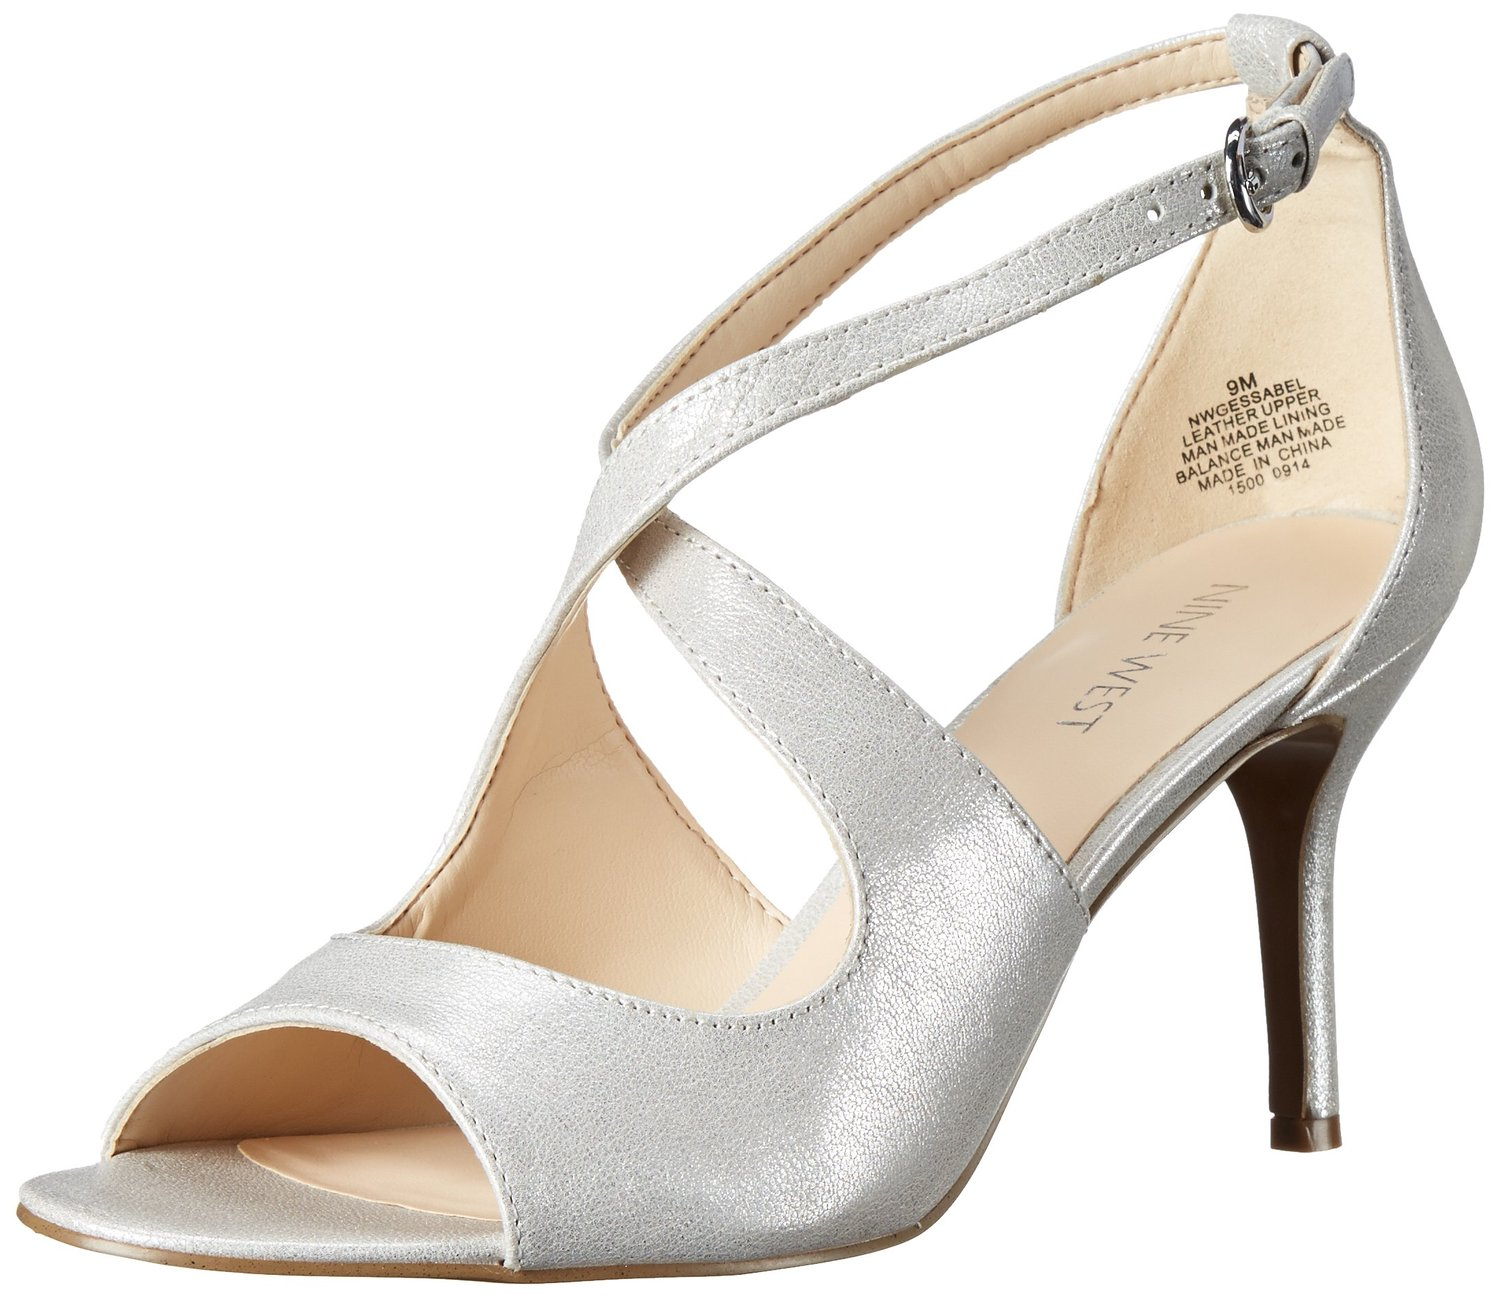 Nine West Gessabel Metallic Dress Sandal